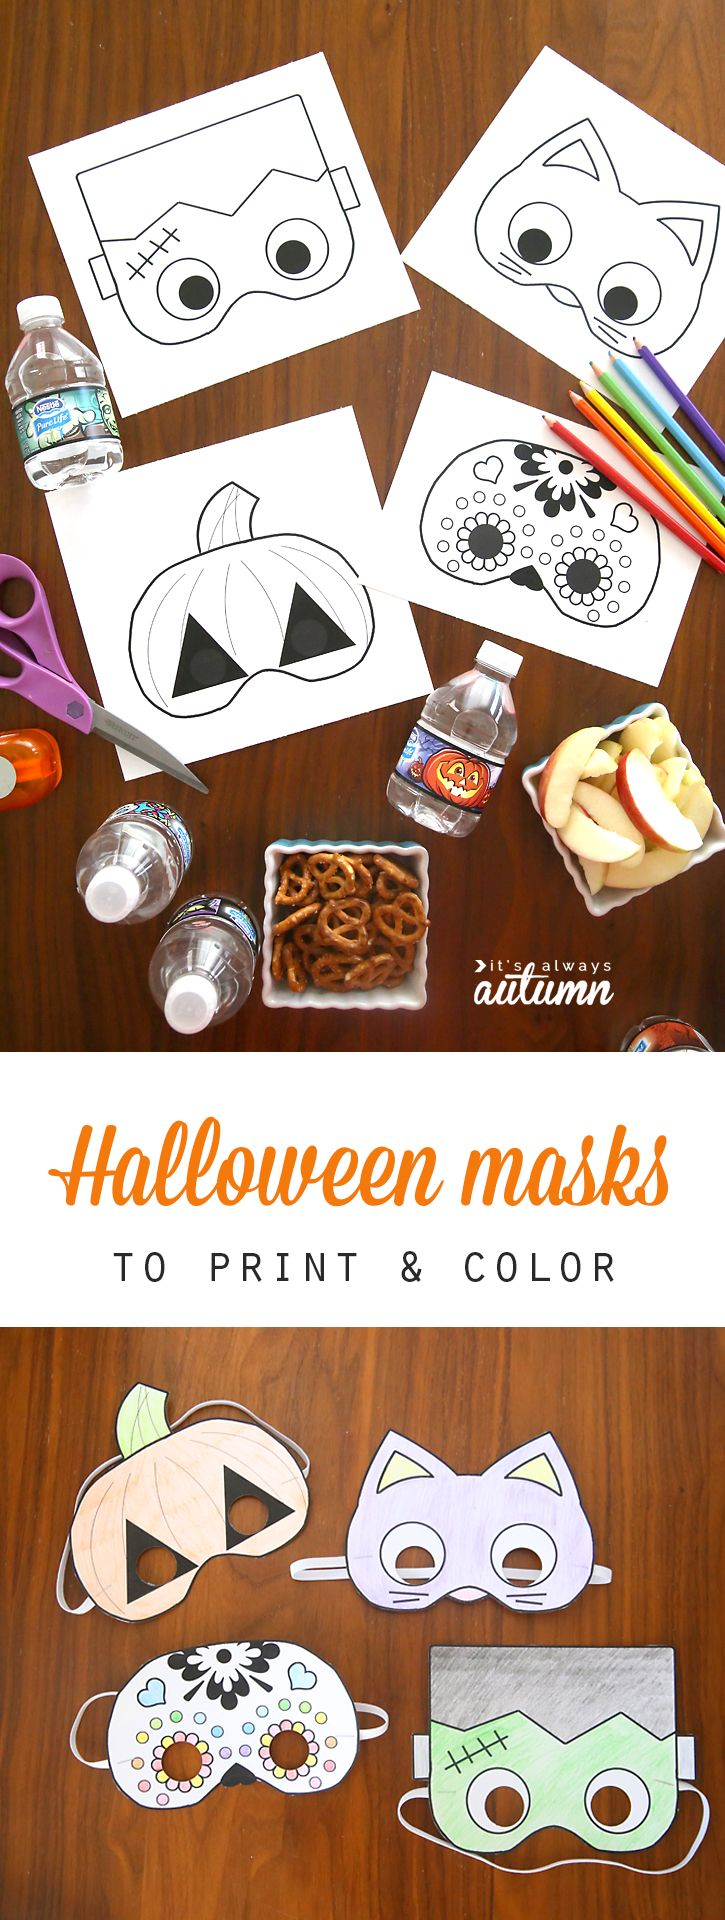 Halloween masks to print and color Halloween craft